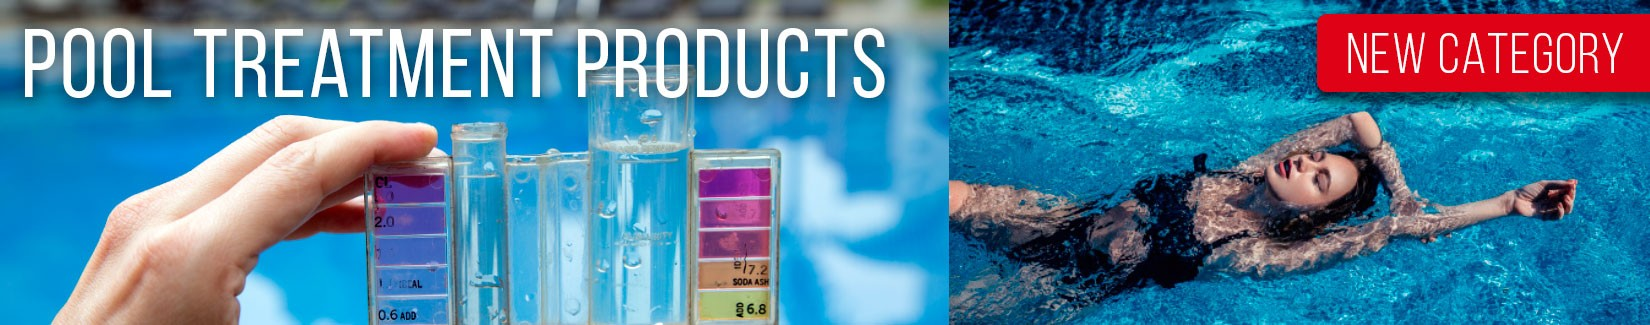 NEW CATEGORY OF POOL TREATMENT PRODUCTS